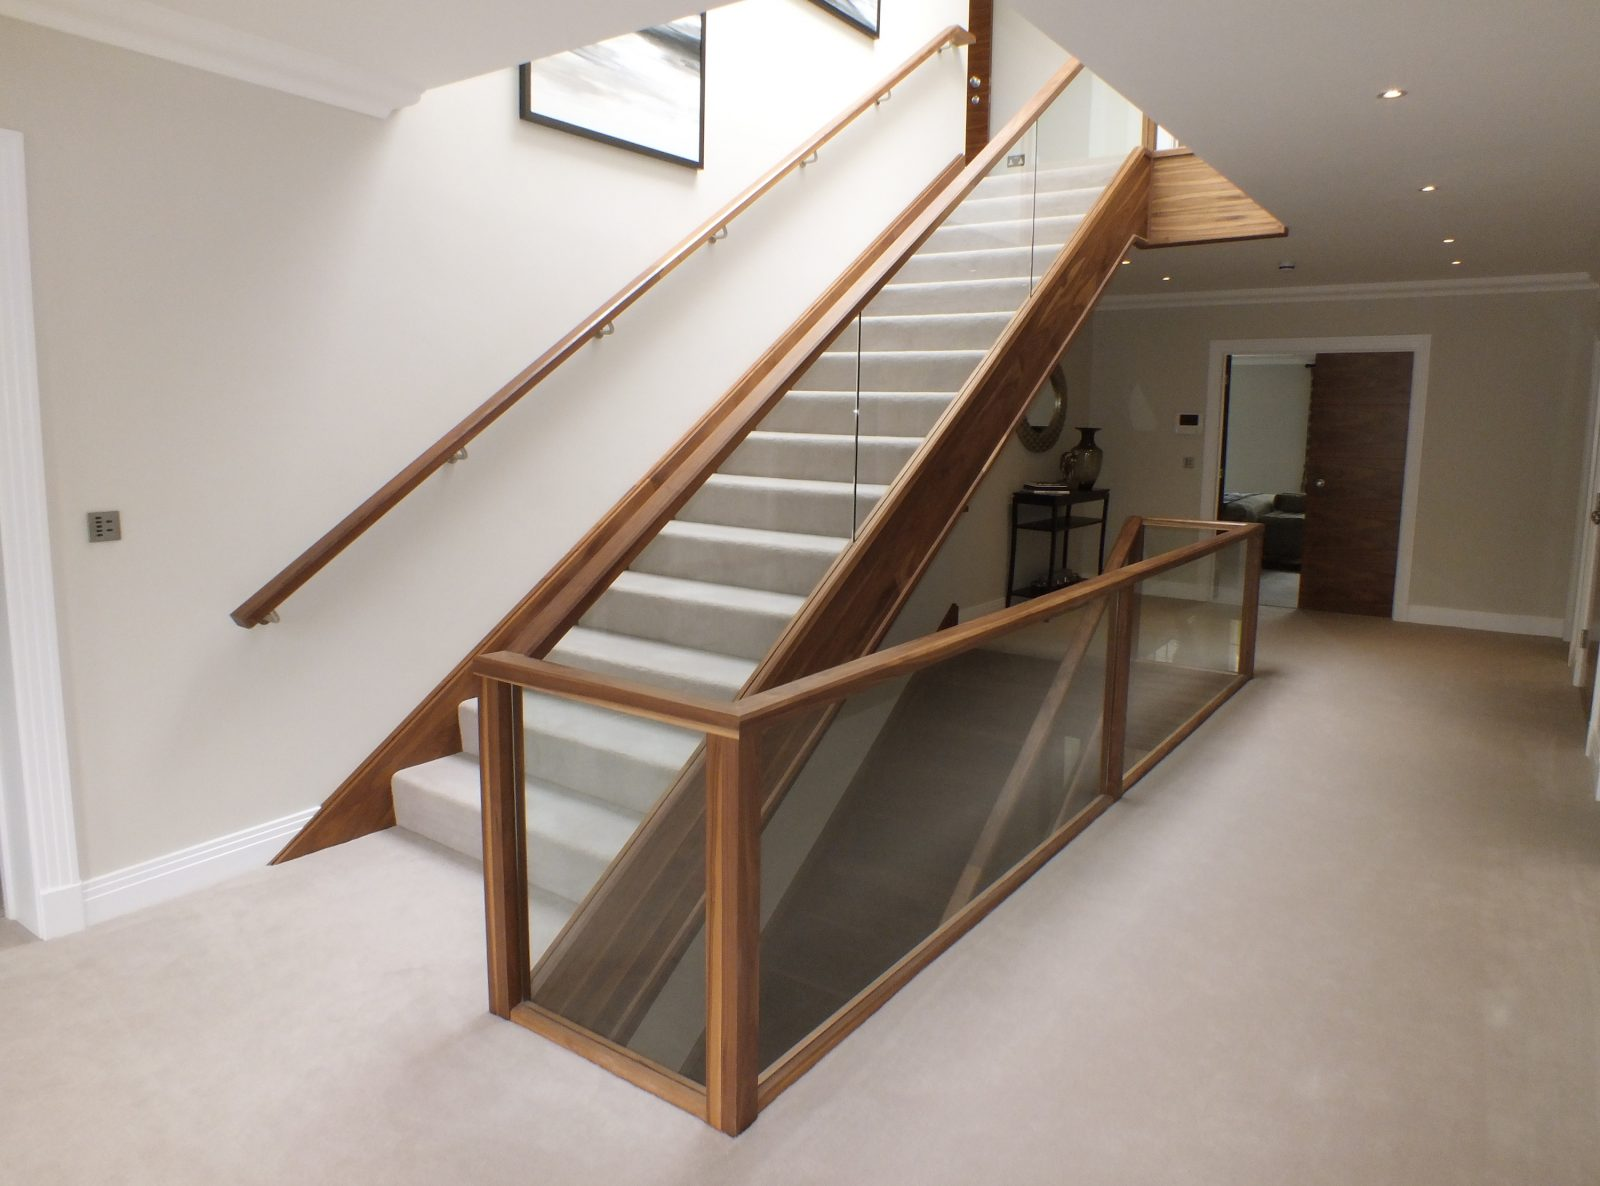 Staircases In Homes Glass Staircase Design Manufacture Edwards Hampson Ltd